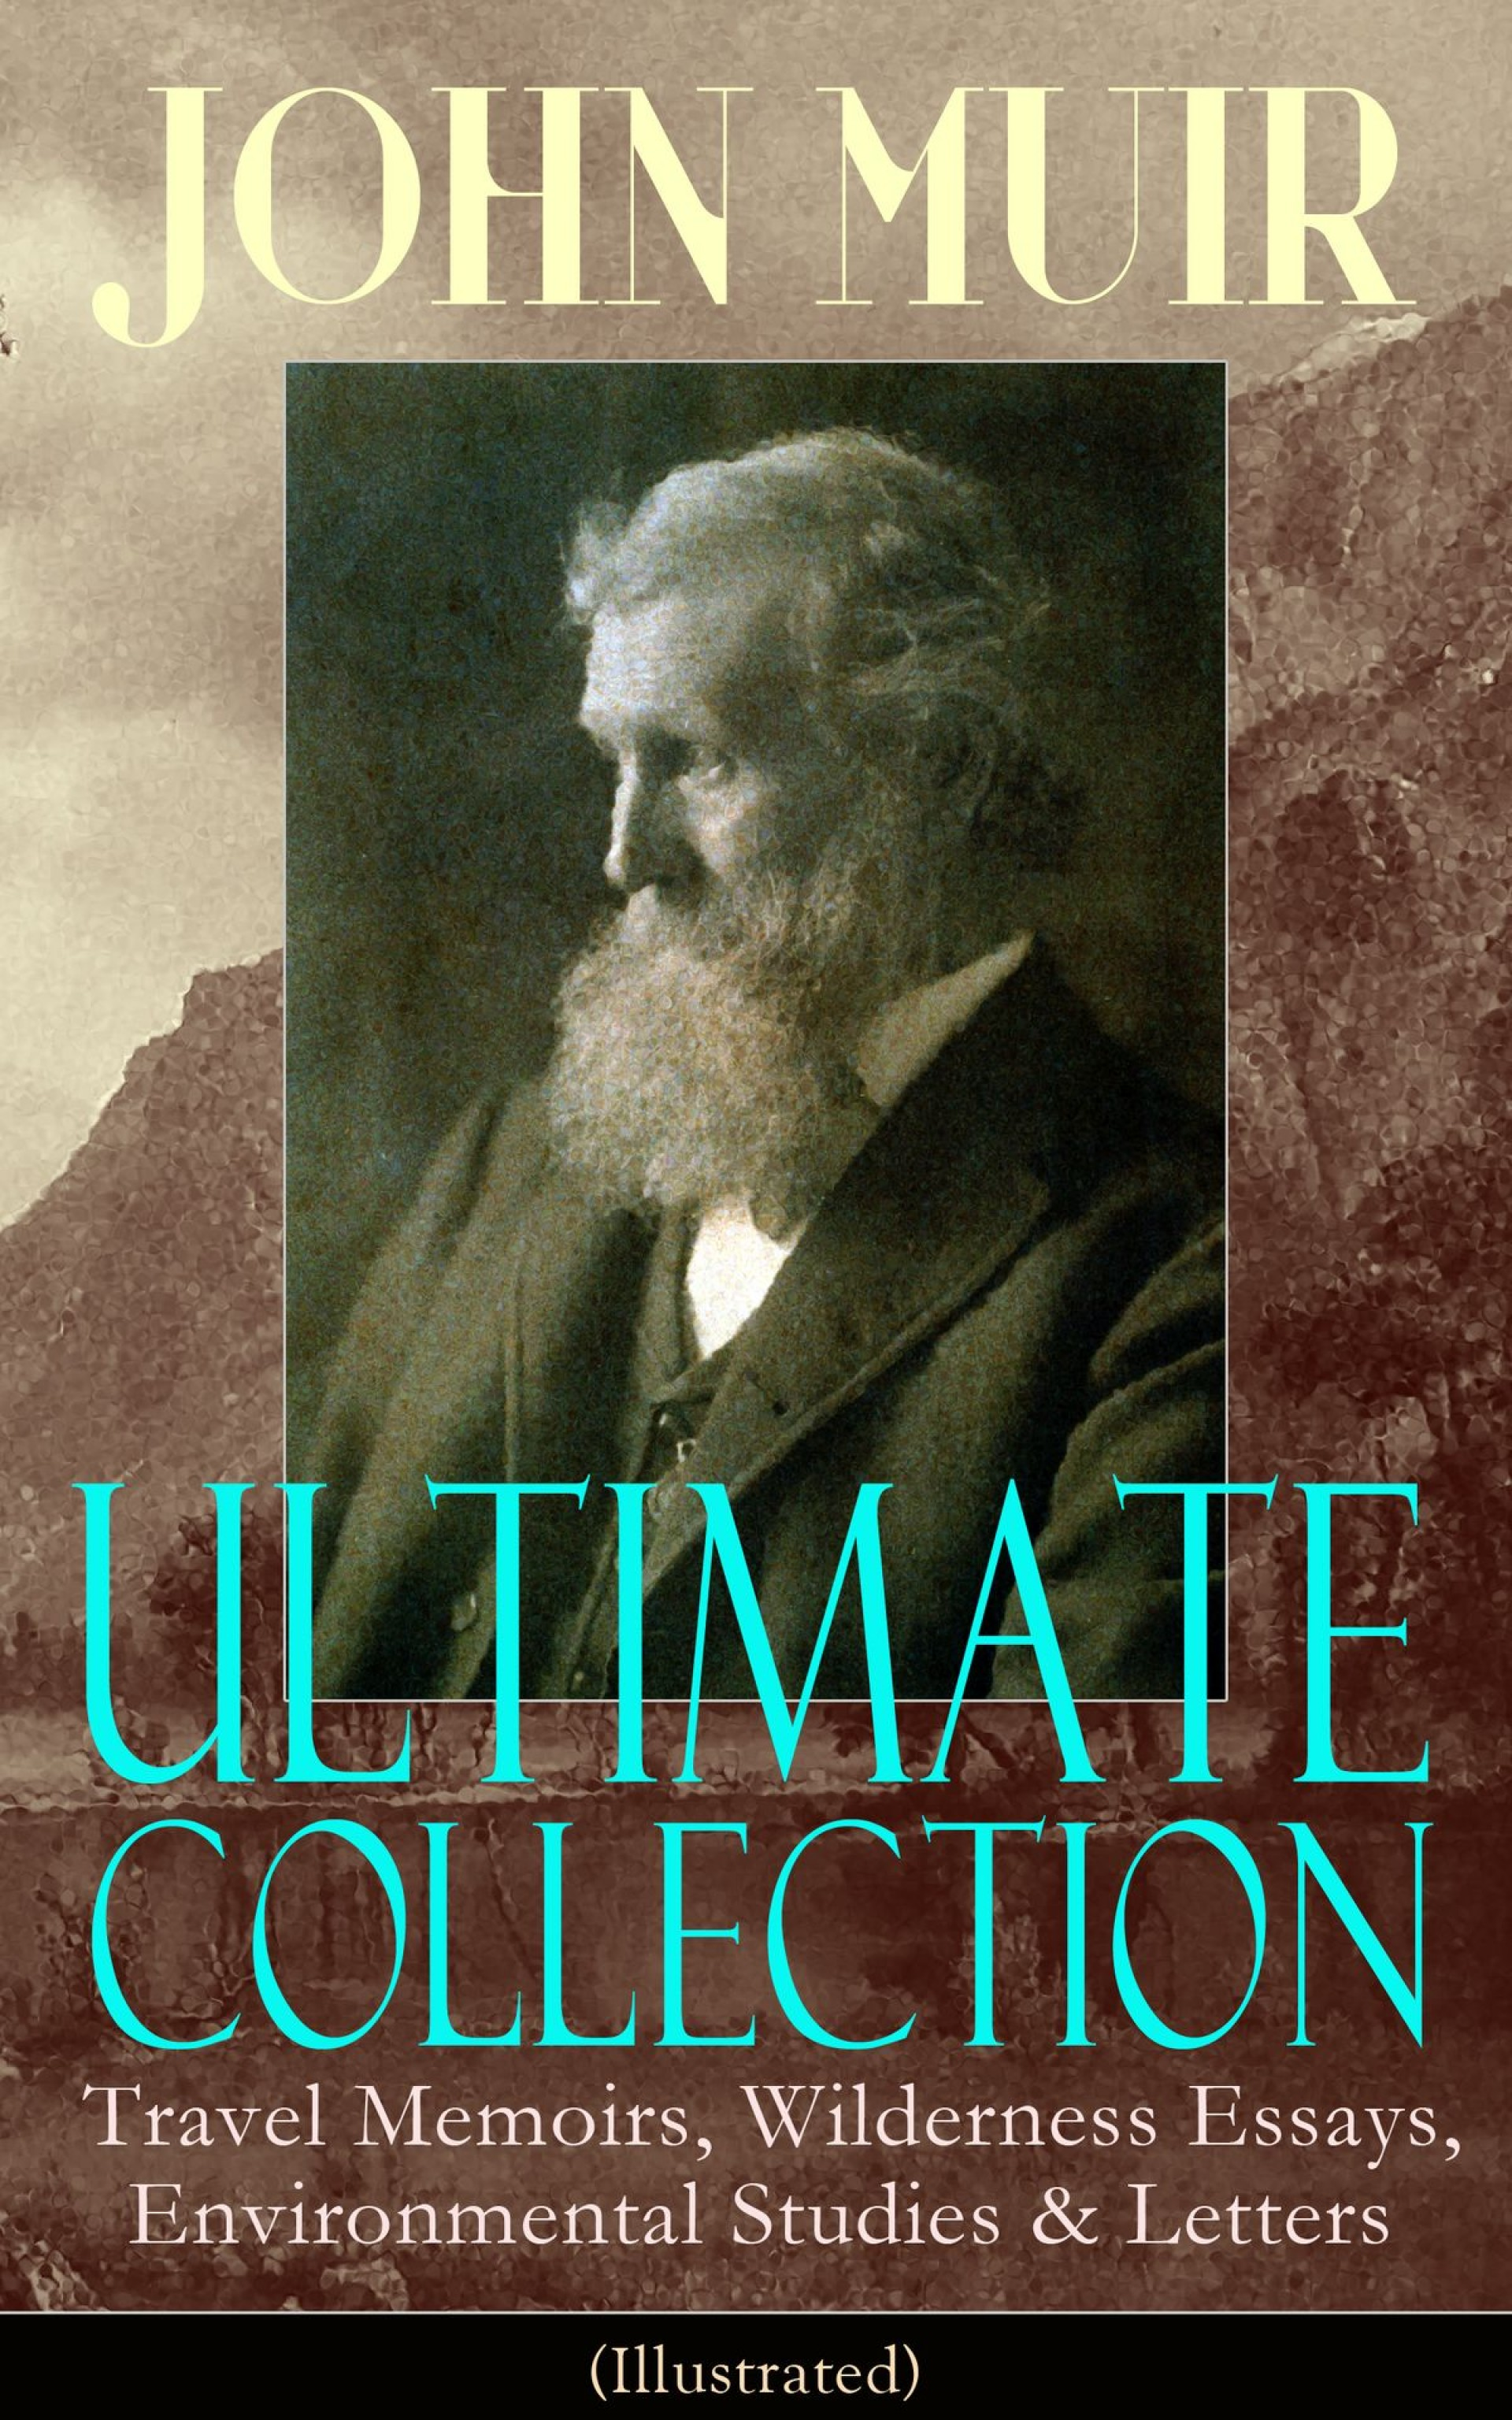 017 John Muir Ultimate Collection Travel Memoirs Wilderness Essays